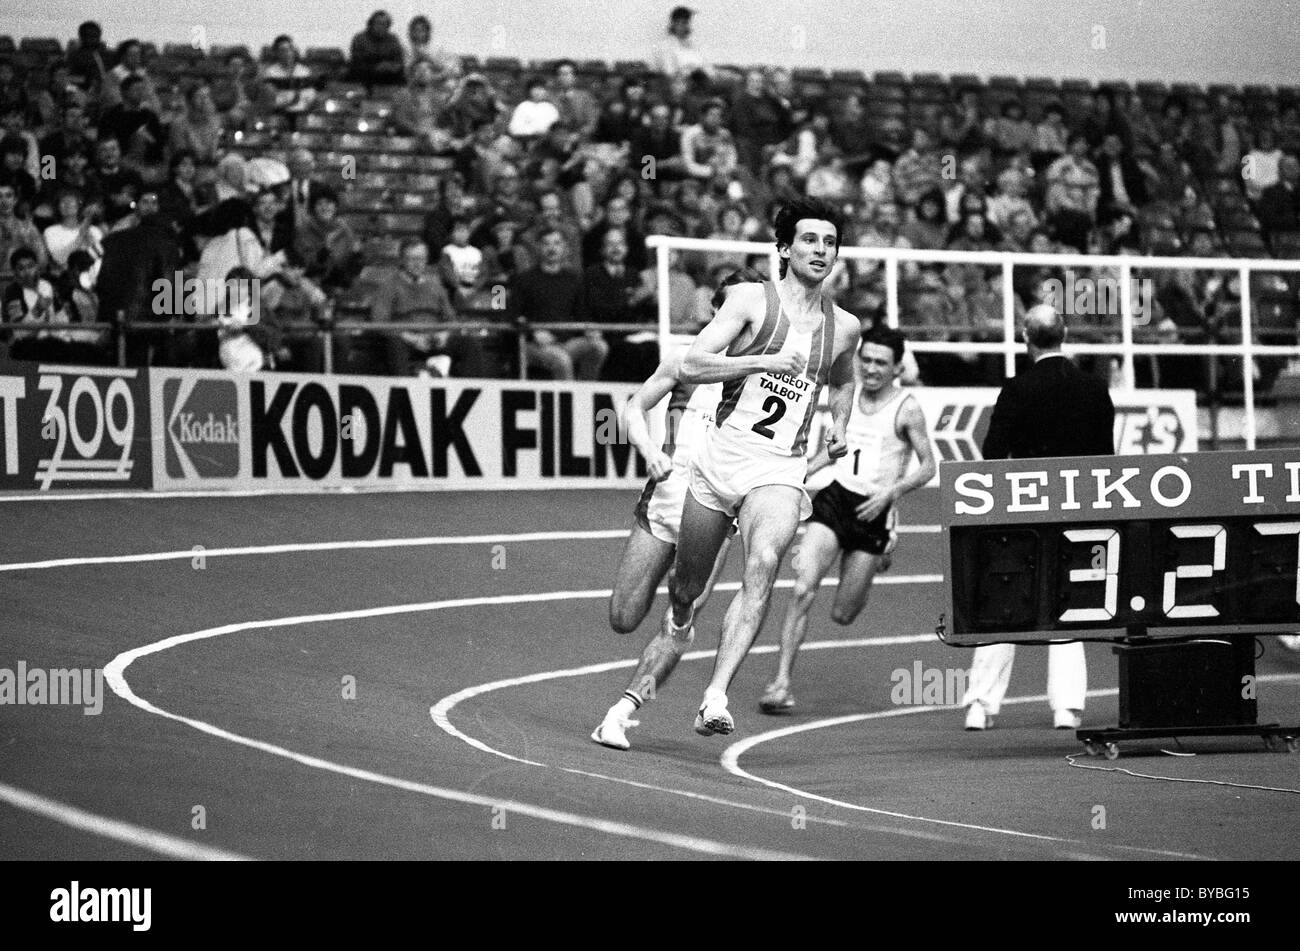 Sebastian Coe at Cosford Athletics Kodak Games meeting 1981 - Stock Image